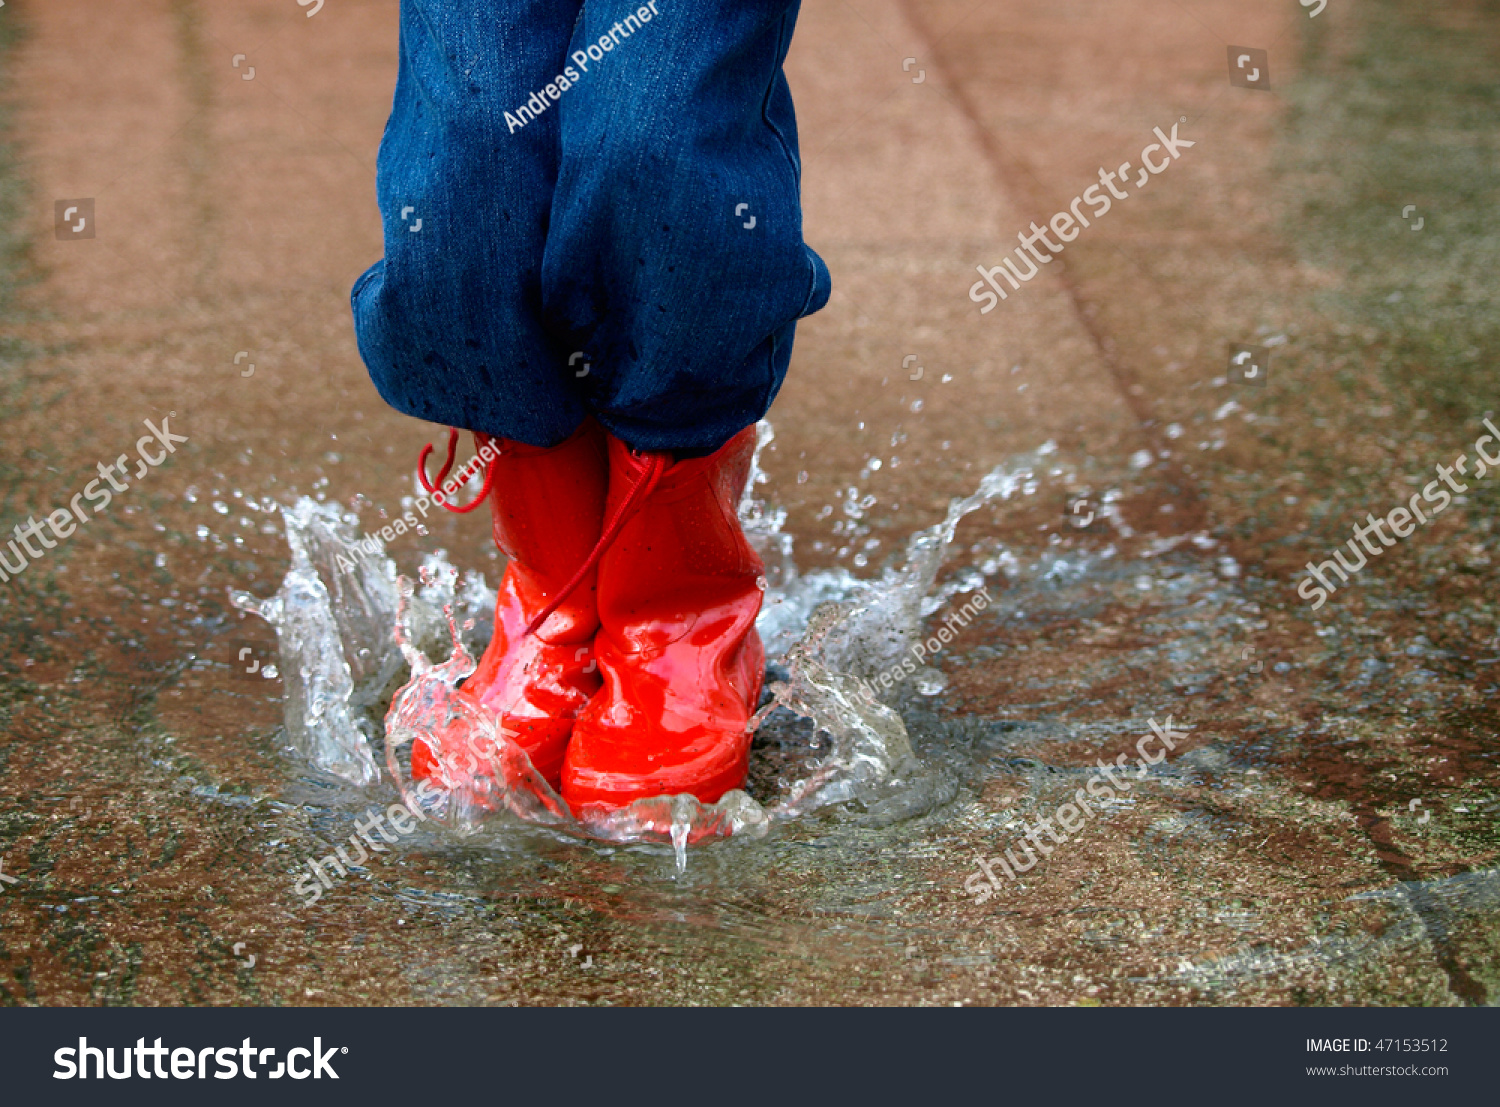 Child Rain Boots Jumps Into Puddle Stock Photo 47153512 - Shutterstock